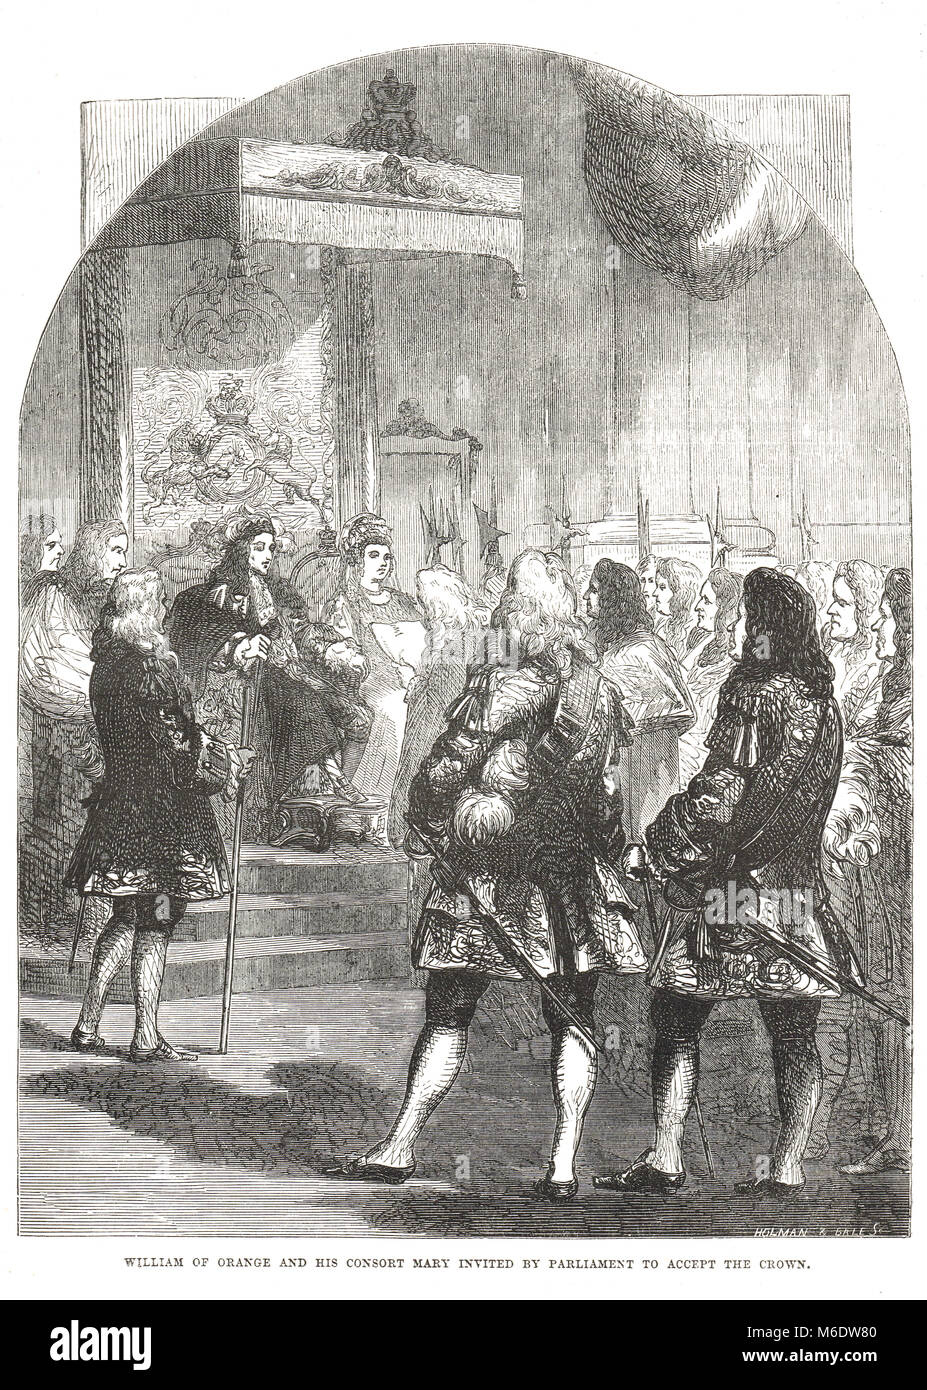 William of orange and consort Mary invited to accept the crown of England, Convention Parliament of 1689 - Stock Image